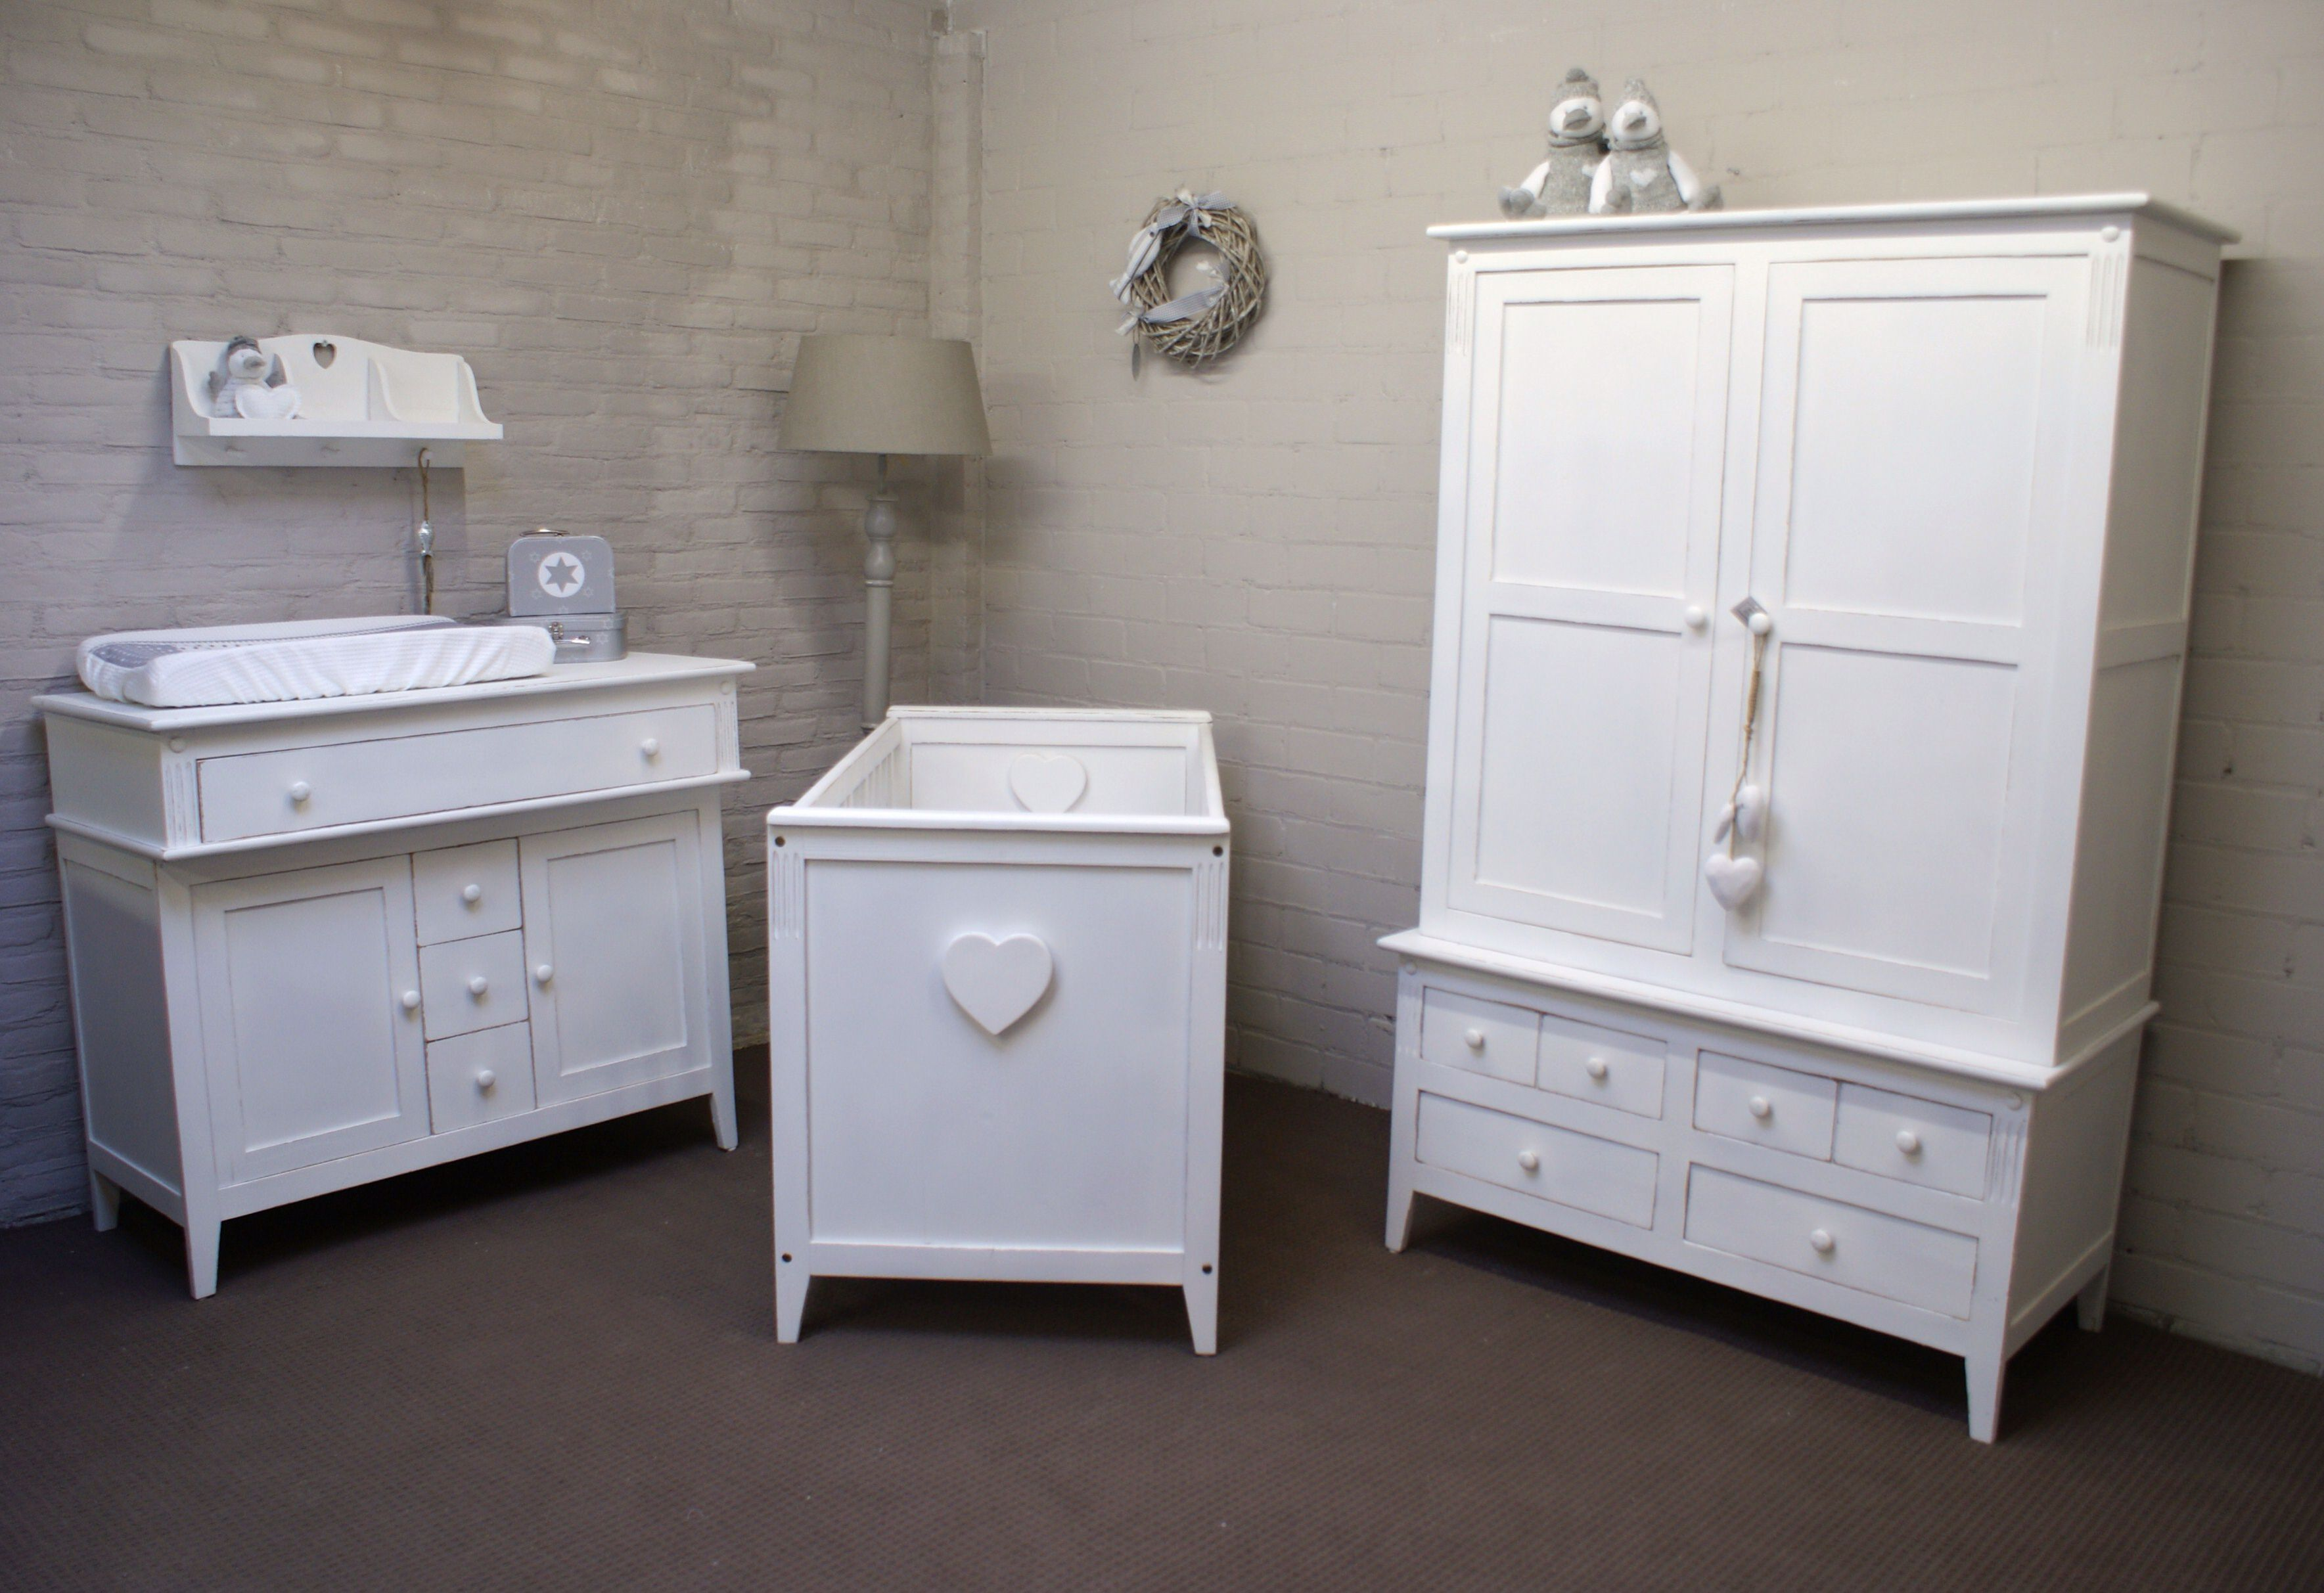 commode babykamer ikea ~ lactate for ., Deco ideeën